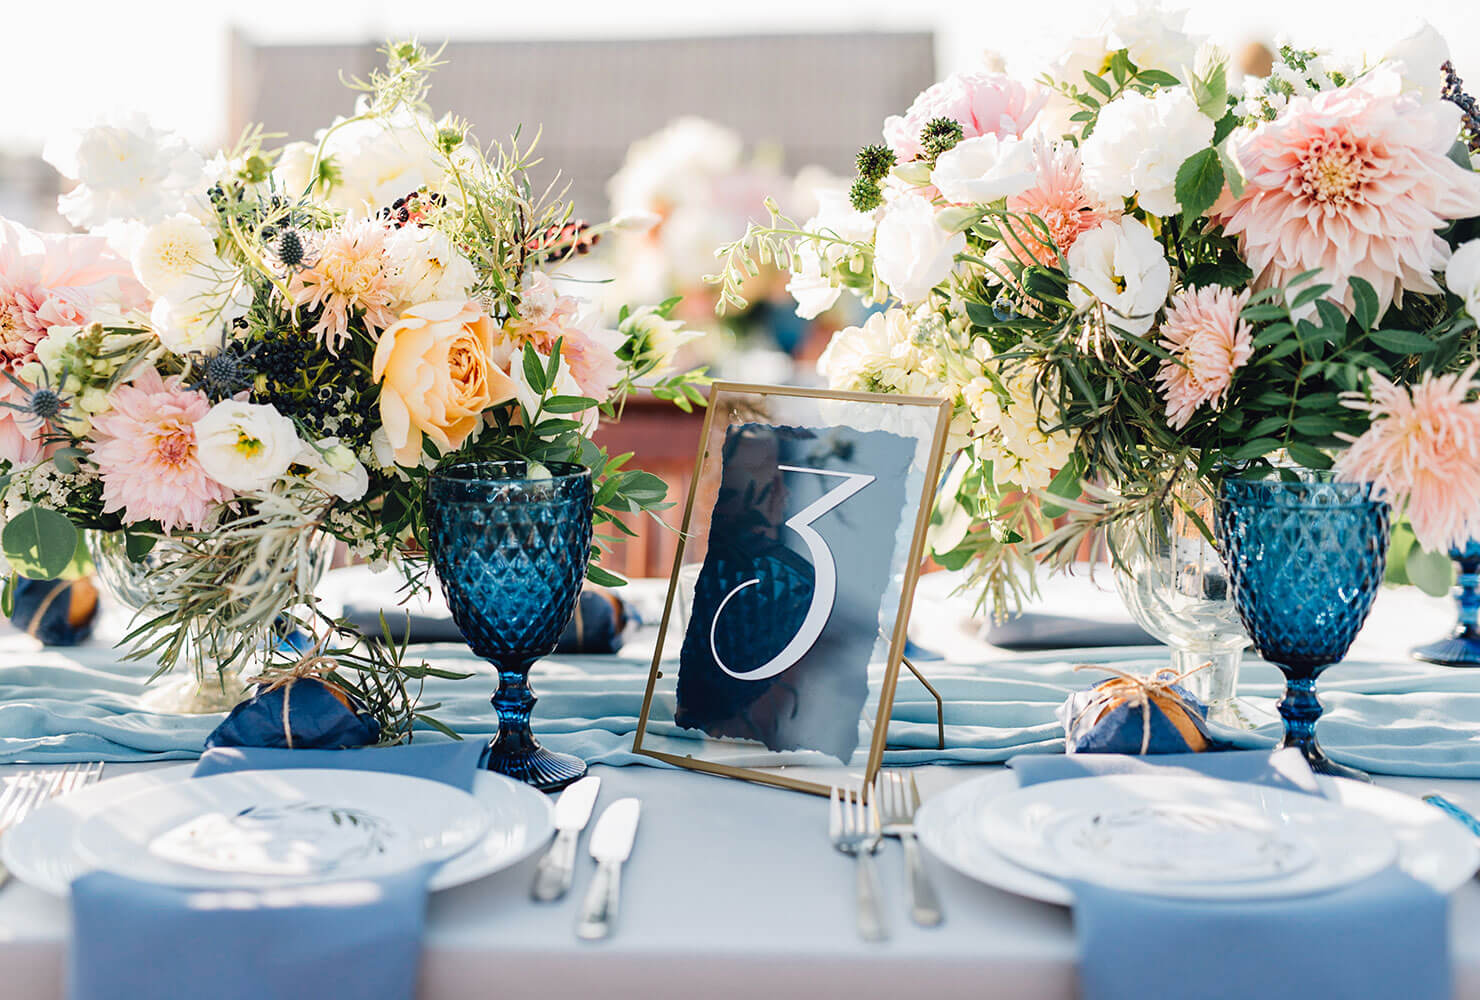 Wedding dinner table decor in a blue and peach color scheme.